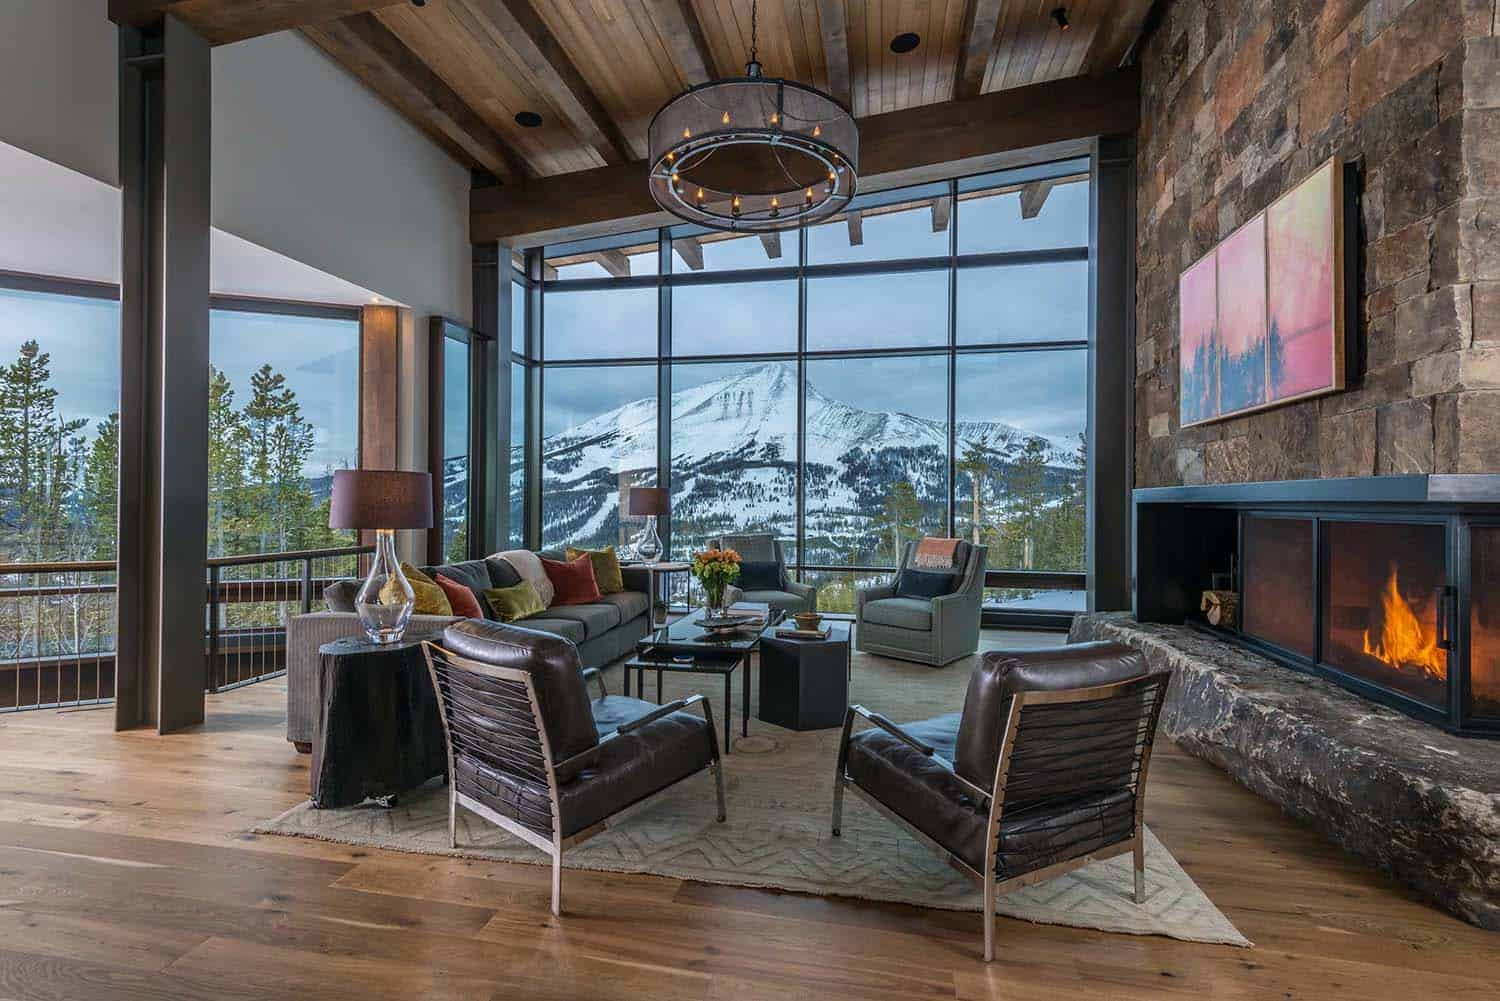 Contemporary Mountain Residence-Reid Smith Architects-03-1 Kindesign